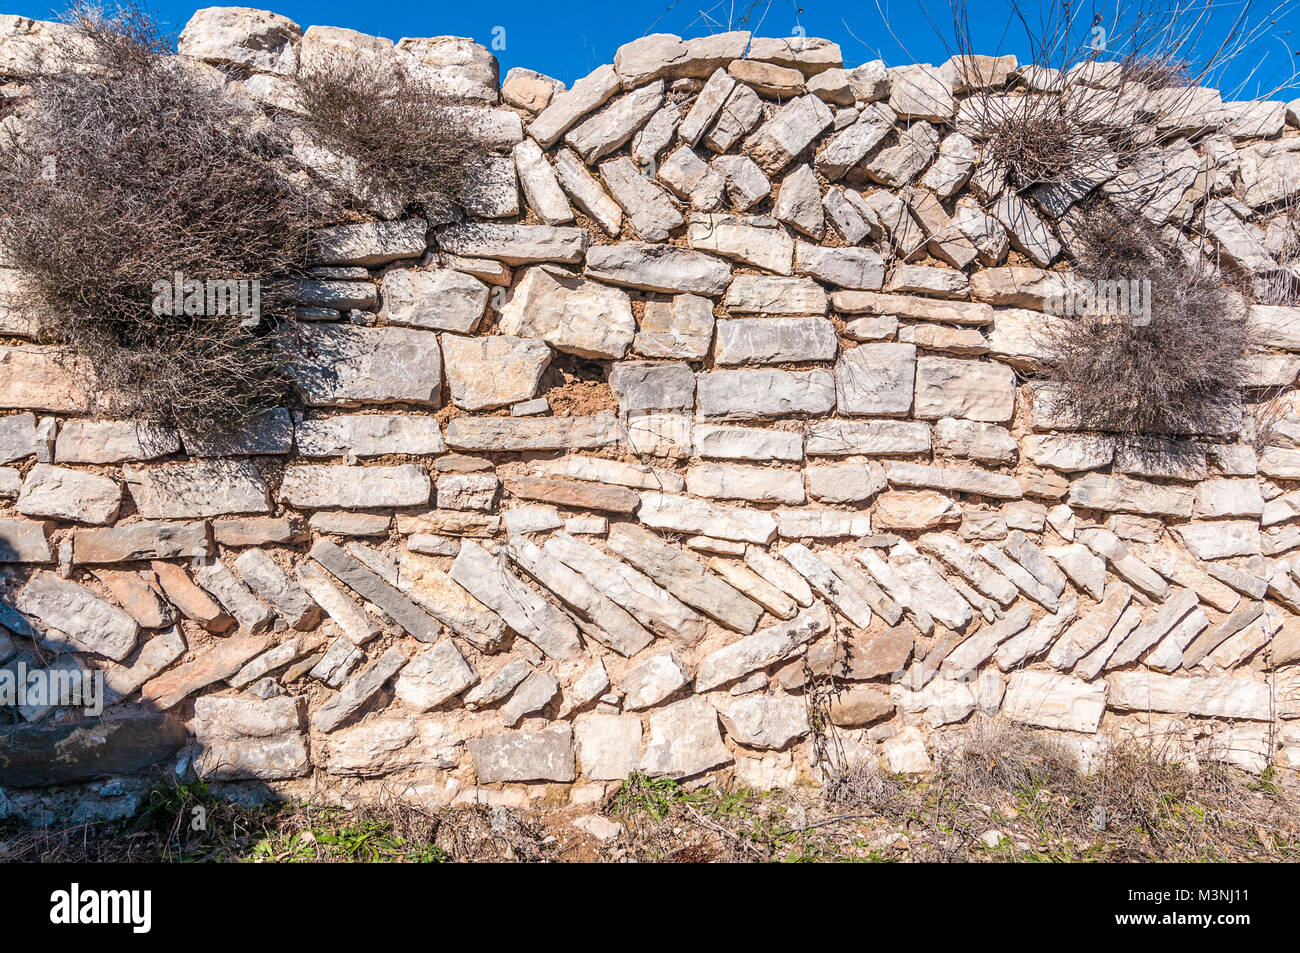 construction example, opus spicatum, type of masonry, roman and medieval times - Stock Image